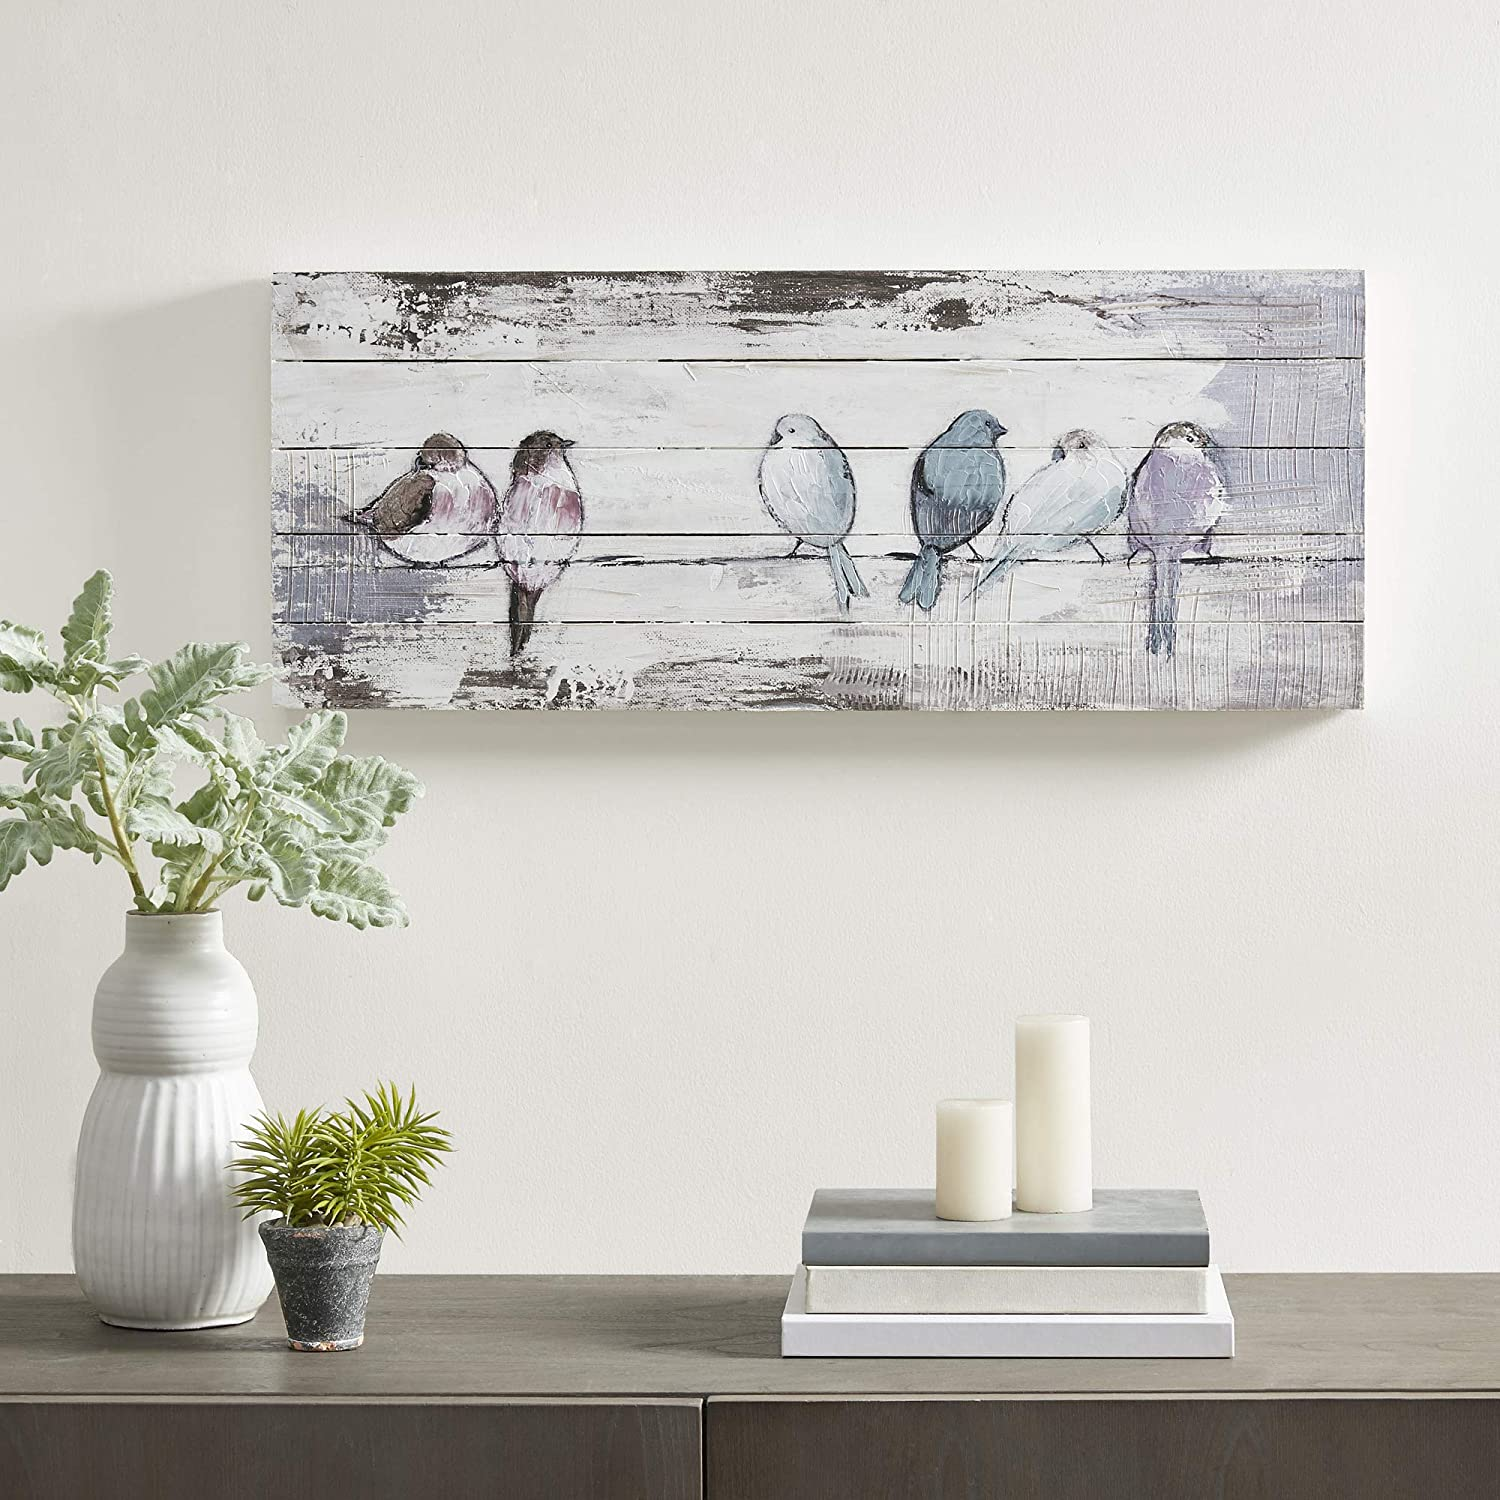 Madison Park Perched Birds Wall Art Living Room Décor-Hand Wood Plank Home Accent Farmhouse Bathroom Decoration, Ready to Hang Painting for Bedroom, 12